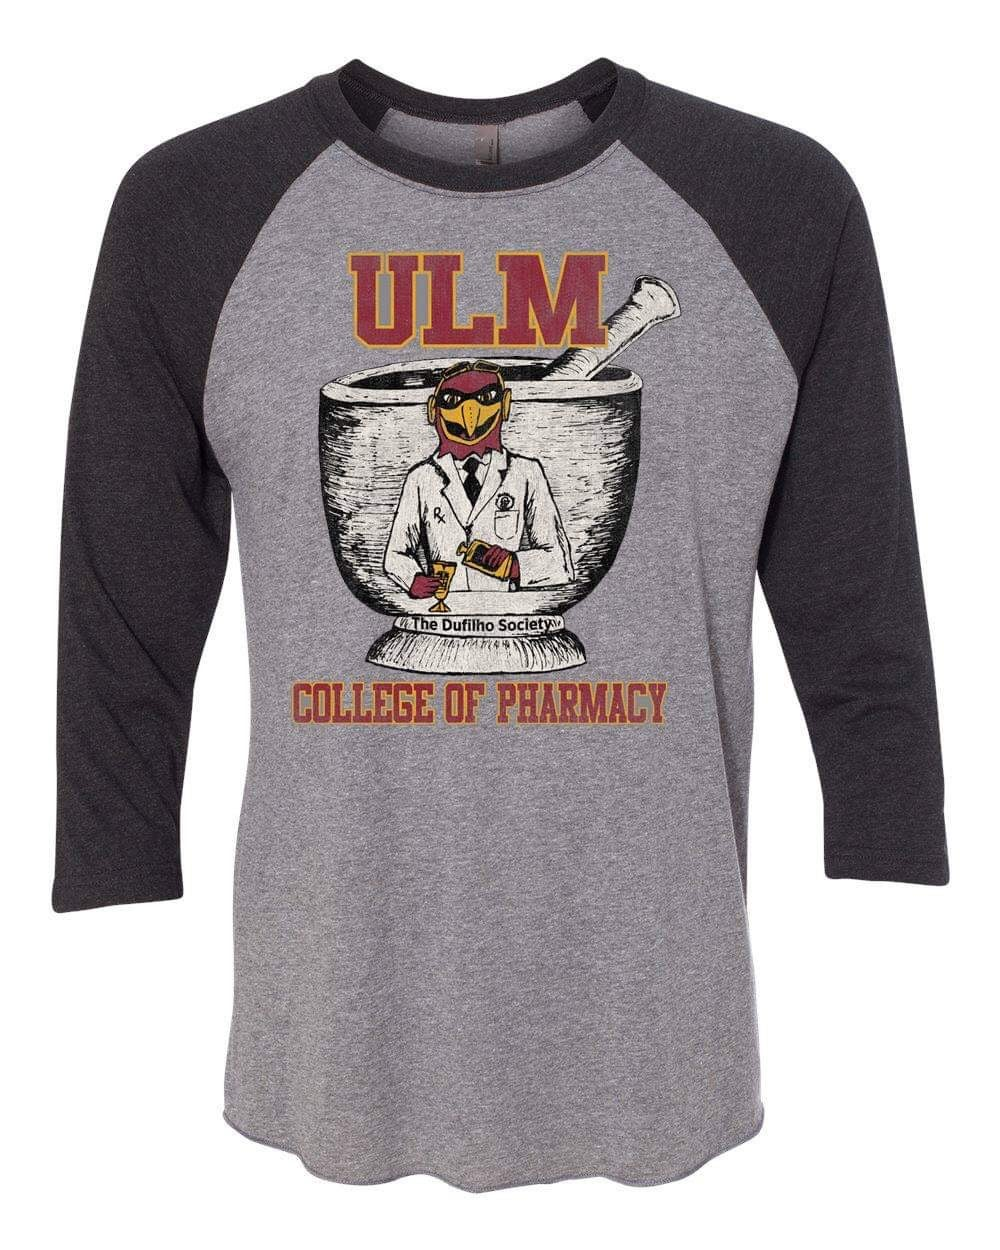 Image of ULM College of Pharmacy Raglan